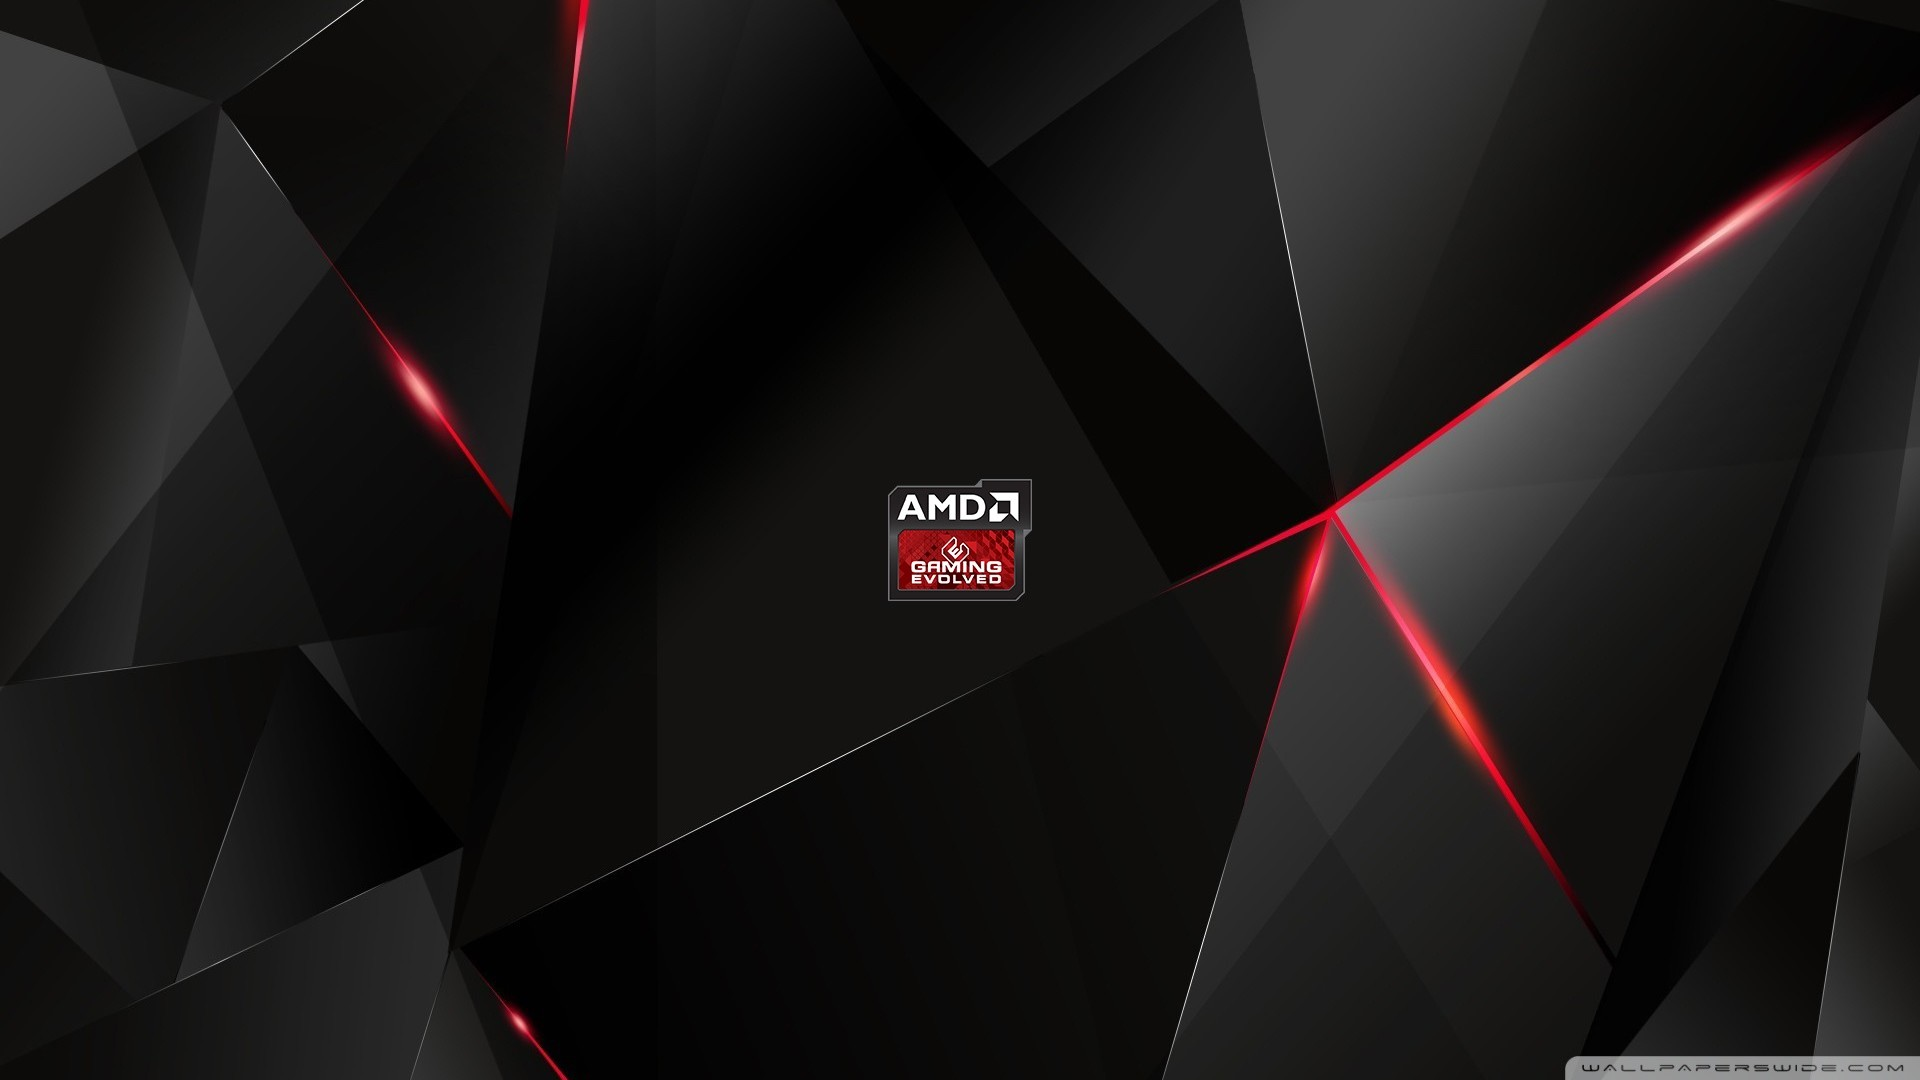 AMD Wallpaper 1920x1080 (86+ images)